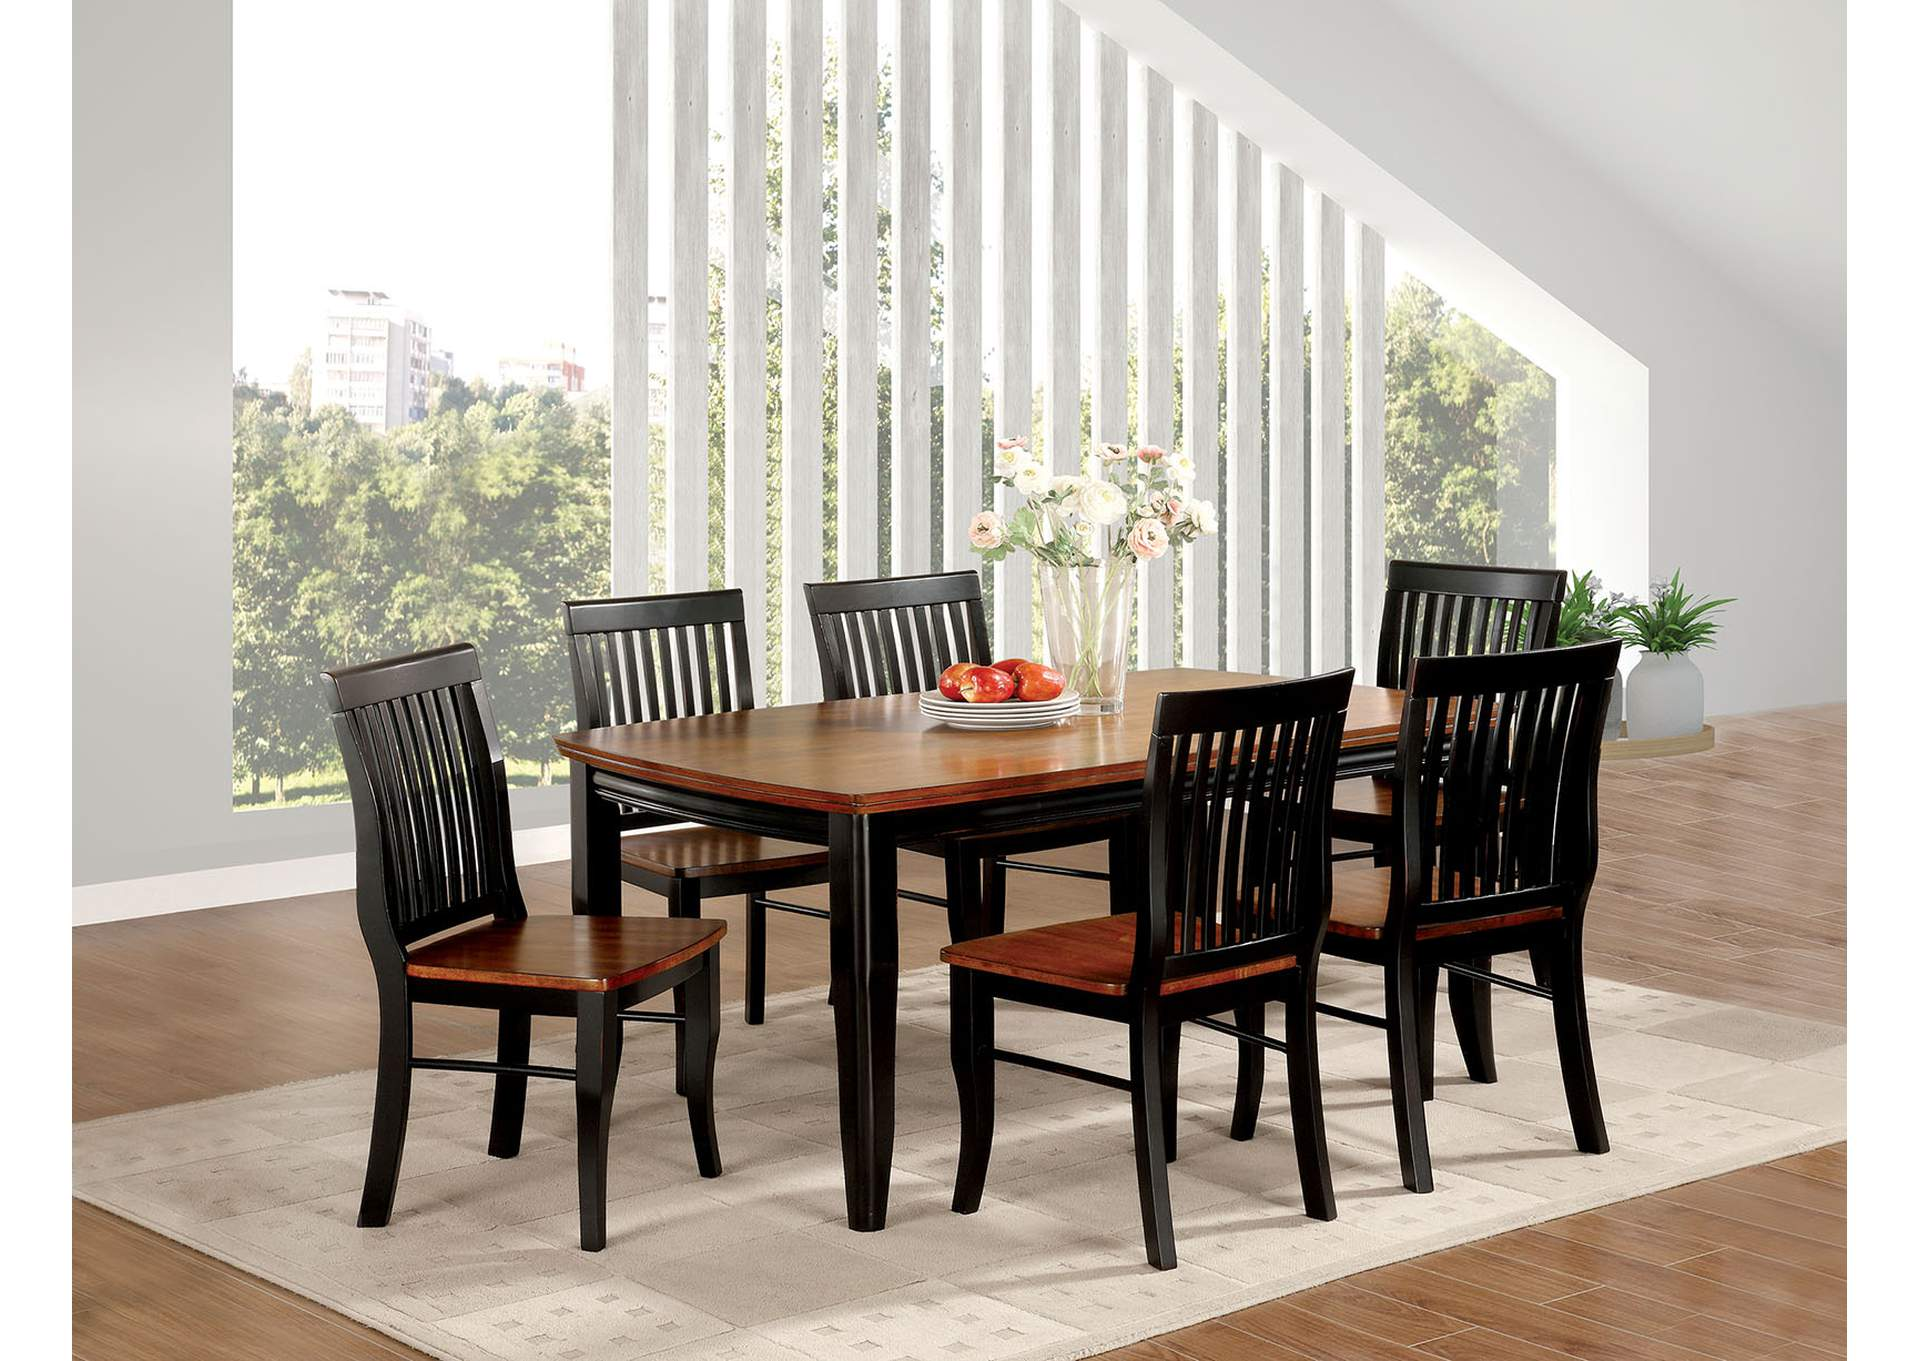 Earlham Black & Oak Dining Table w/4 Side Chairs,Furniture of America